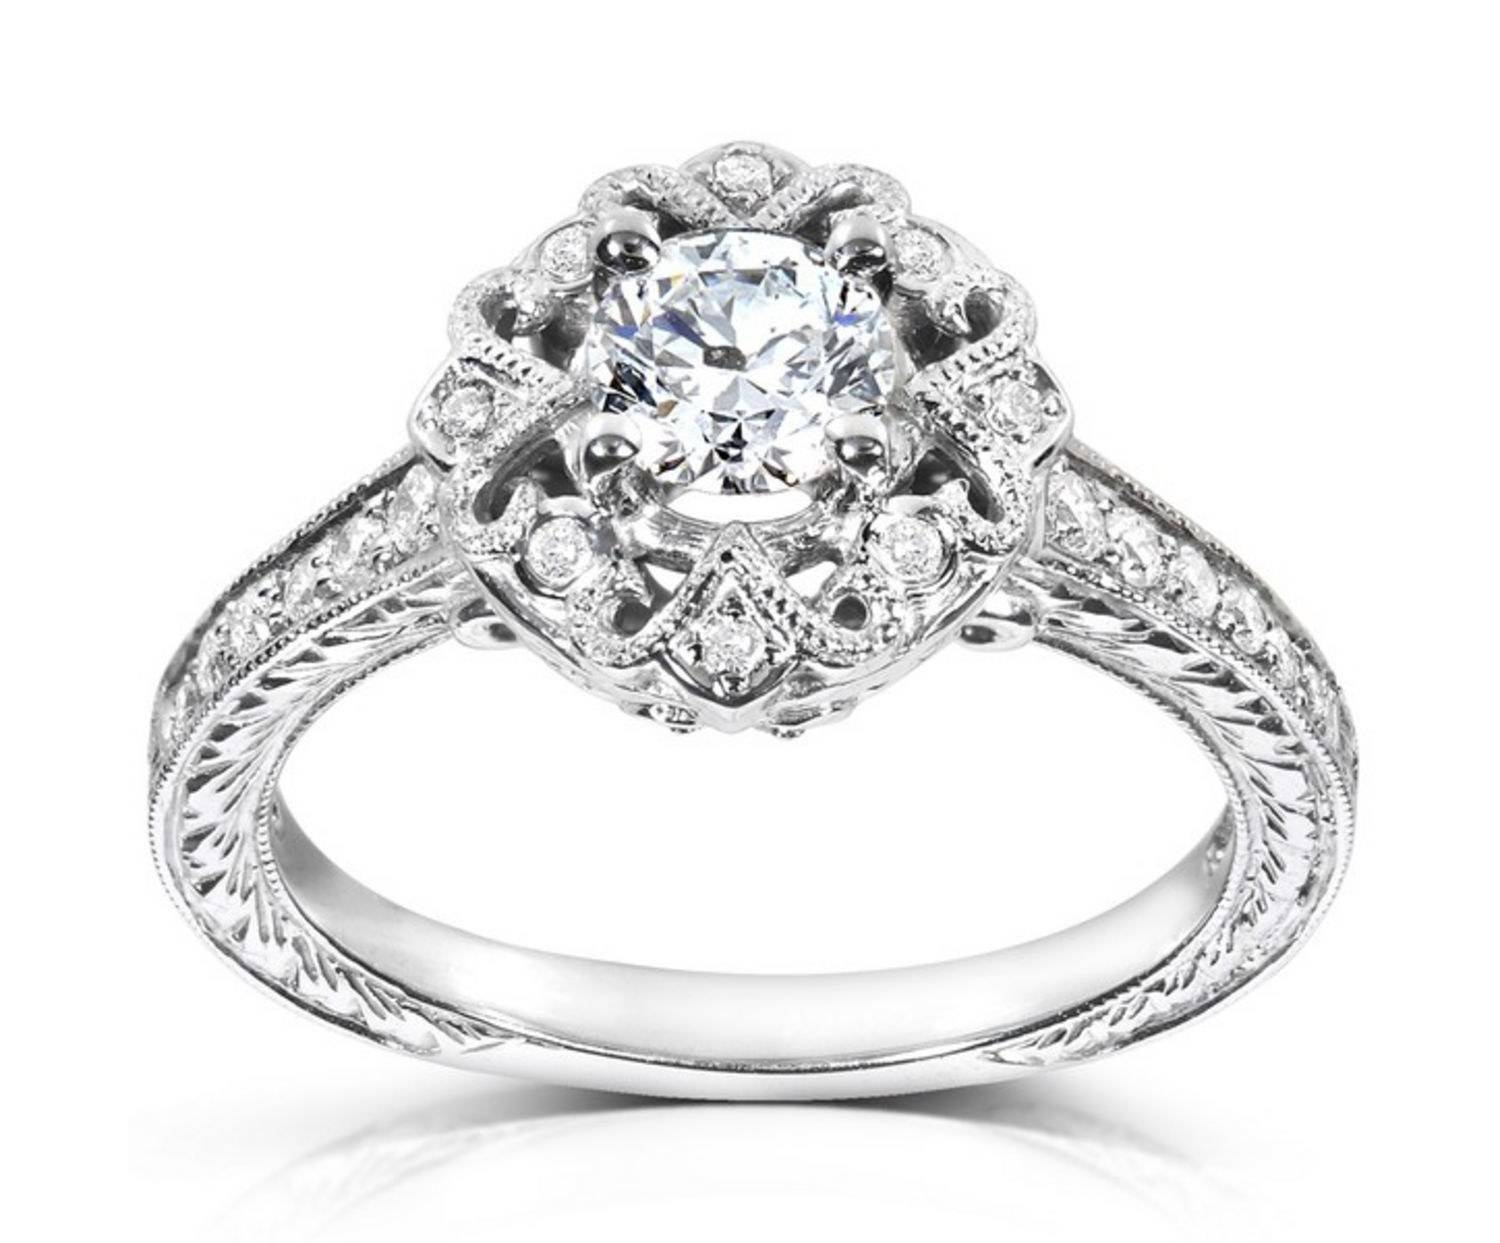 Affordable Engagement Rings Under $1,000 | Glamour Within Cheap Engagement Rings For Women Under  (View 1 of 15)